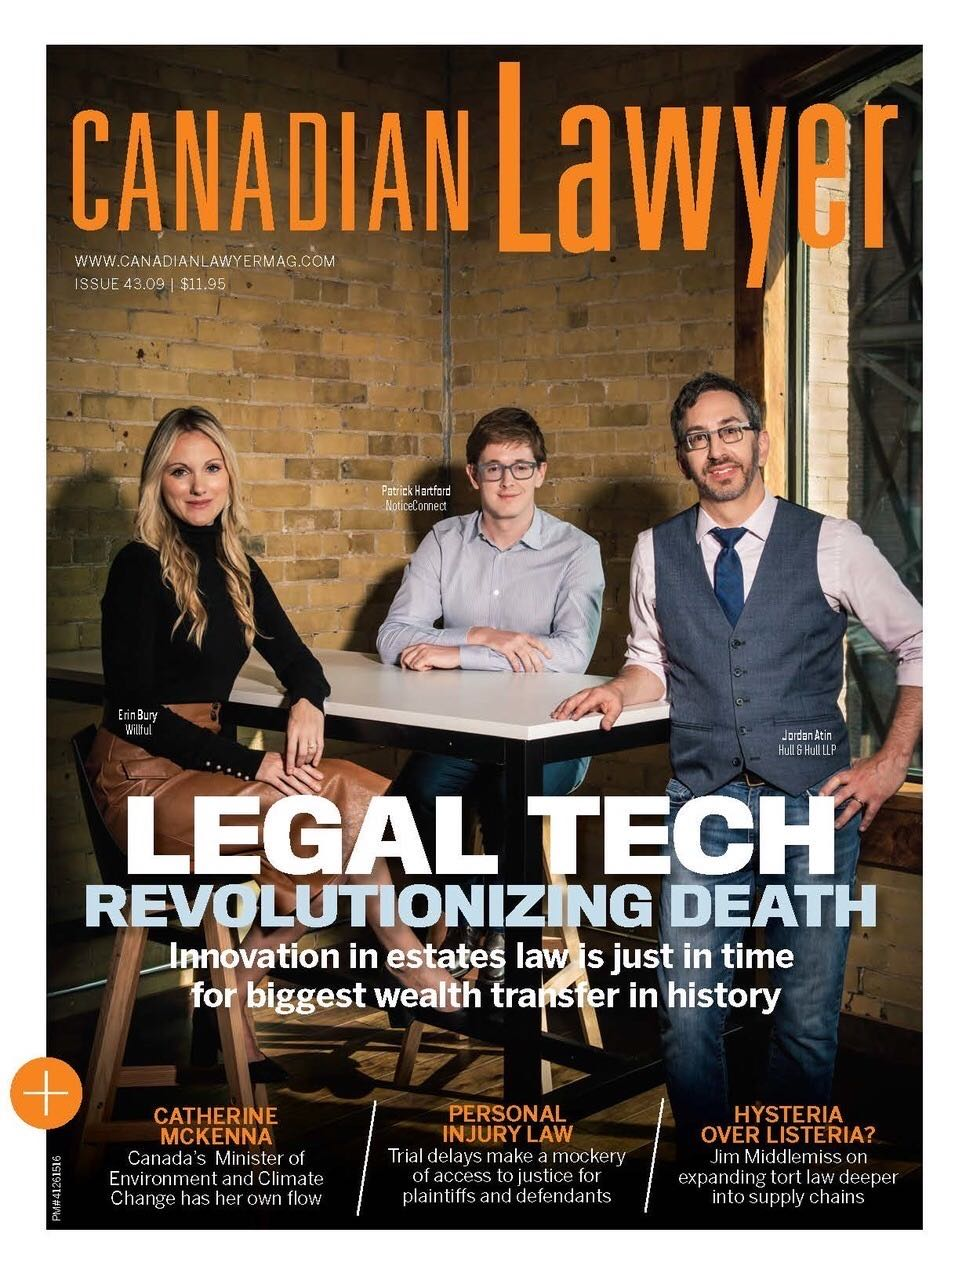 Erin Bury Willful CEO Canadian Lawyer Cover - Legal Tech Revolutionizing Death